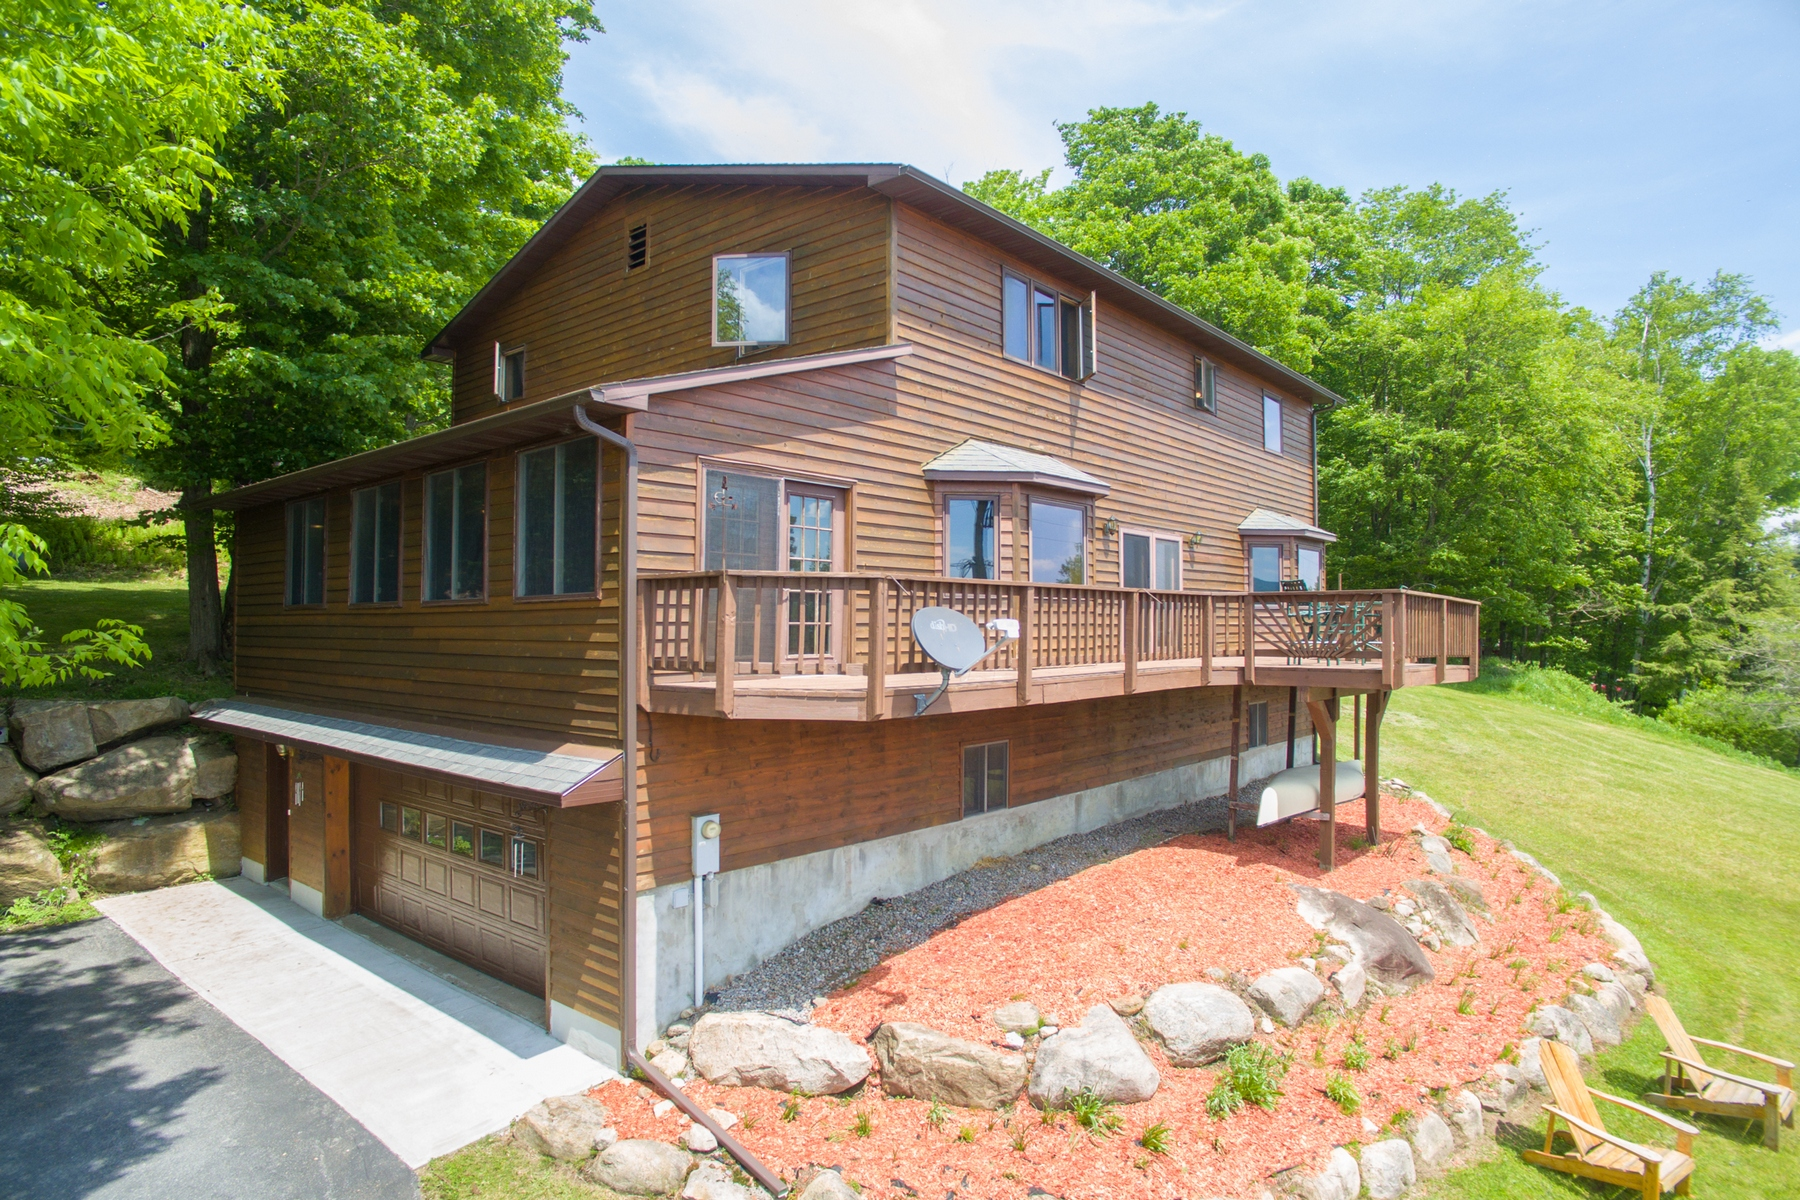 House for Sale at Colonial Overlooking the Lake 573 Hollywood Hills Old Forge, New York 13420 United States